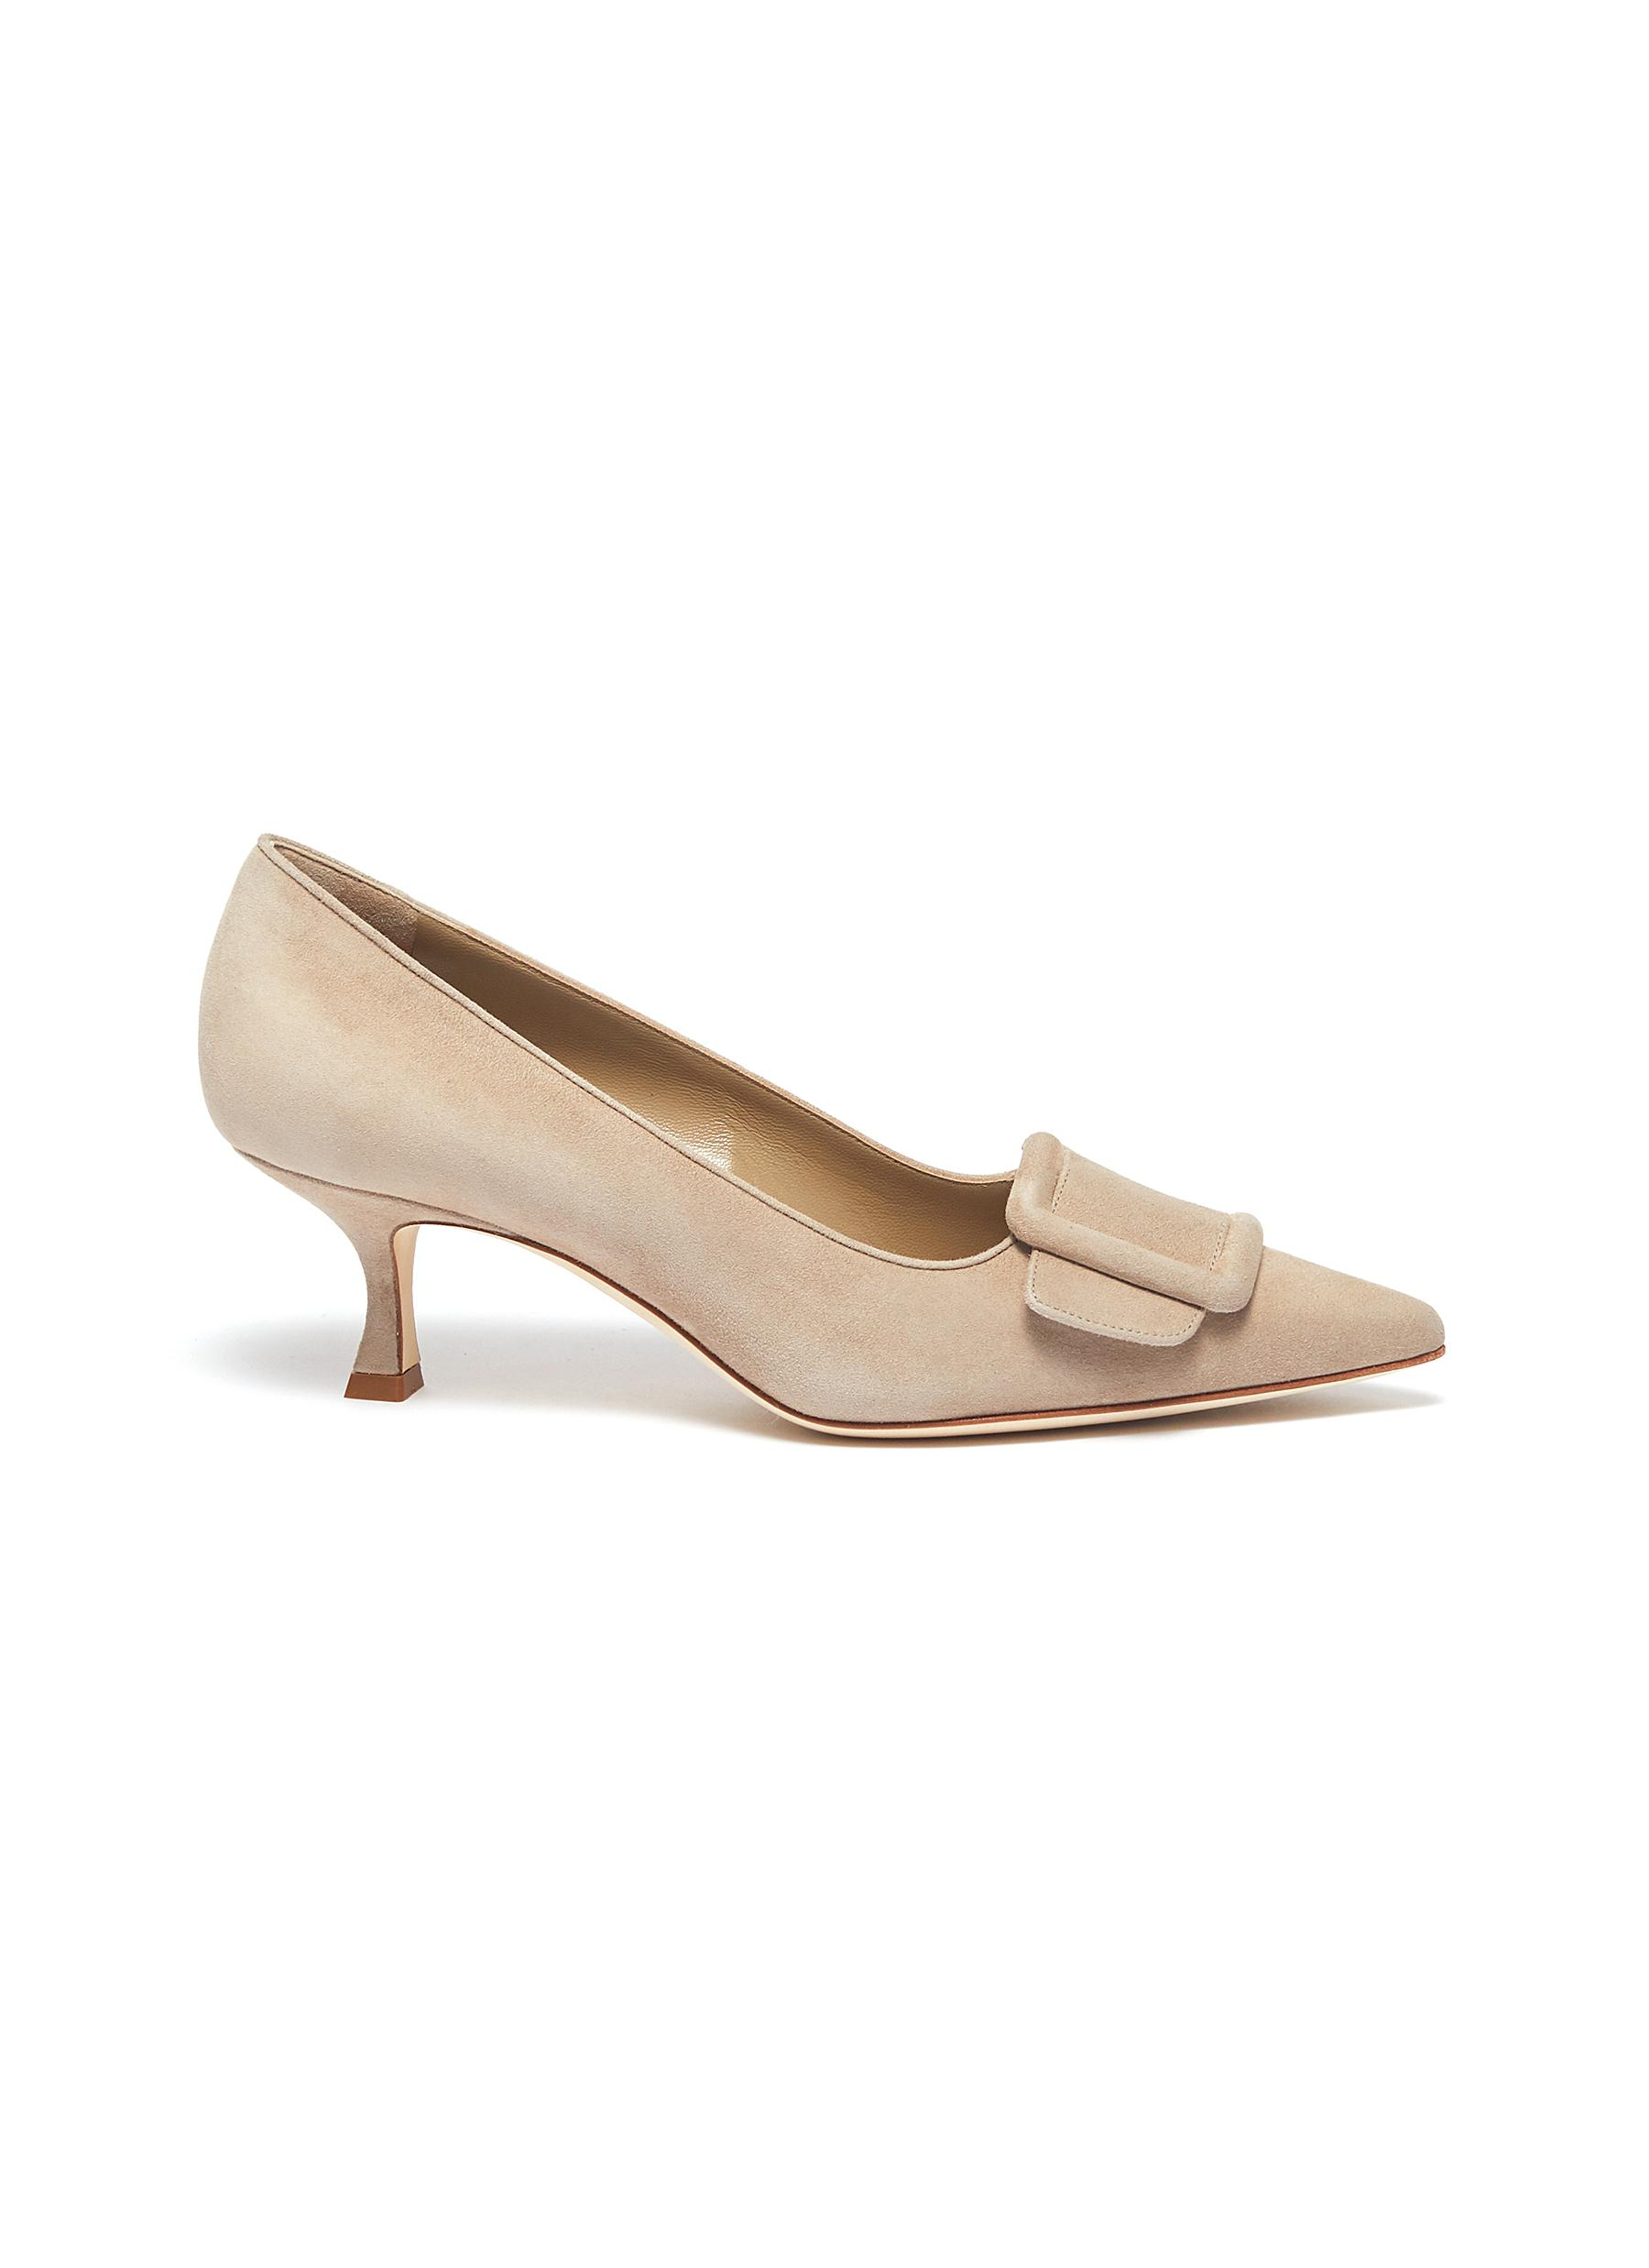 Maysale 50 square brooch suede pumps by Manolo Blahnik